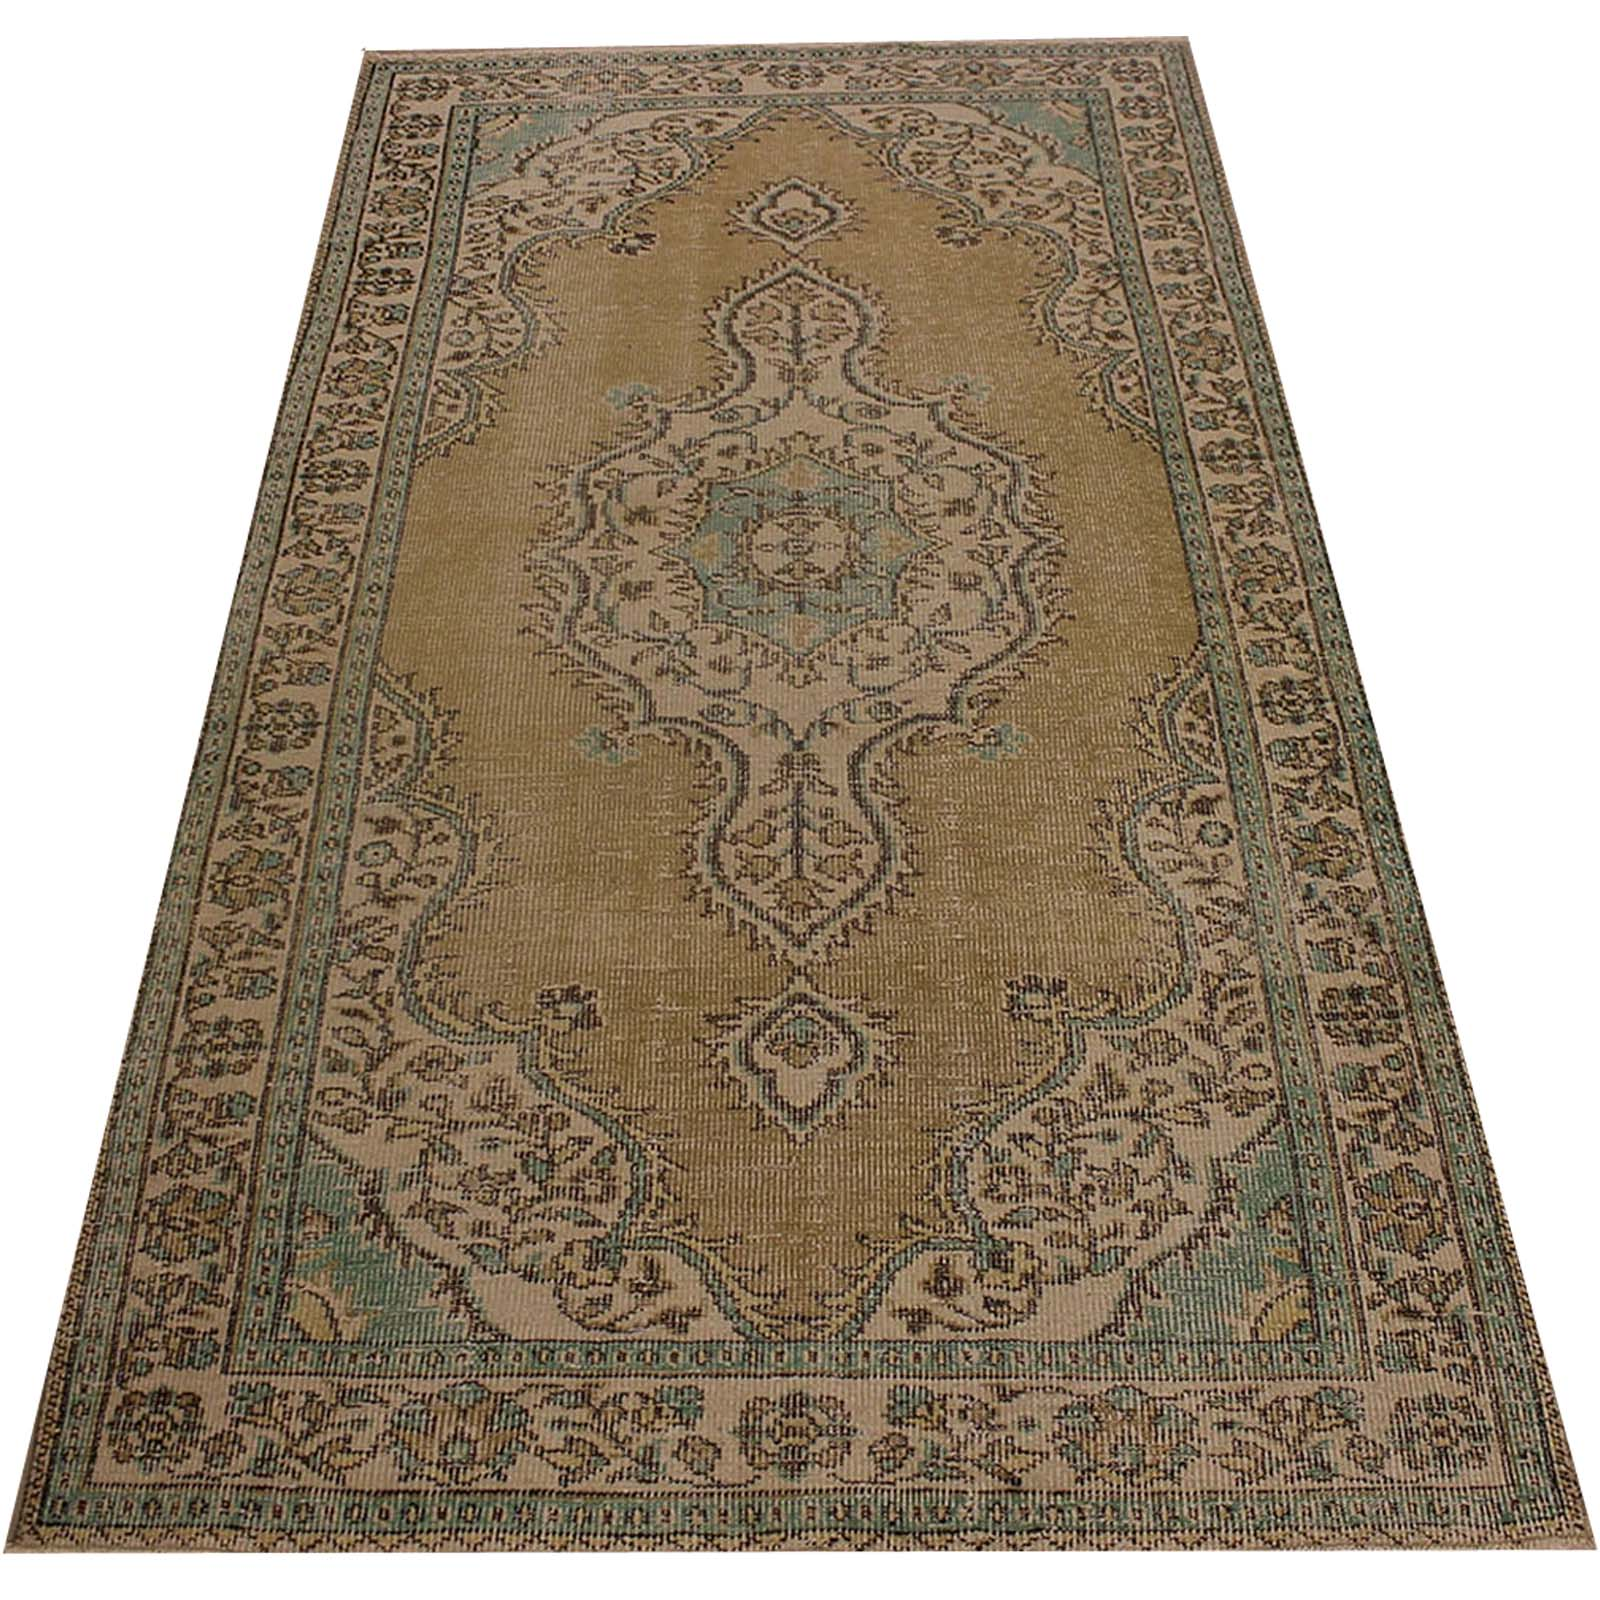 Hali 138X261  CM Bursa Handmade over dyed rug 2358